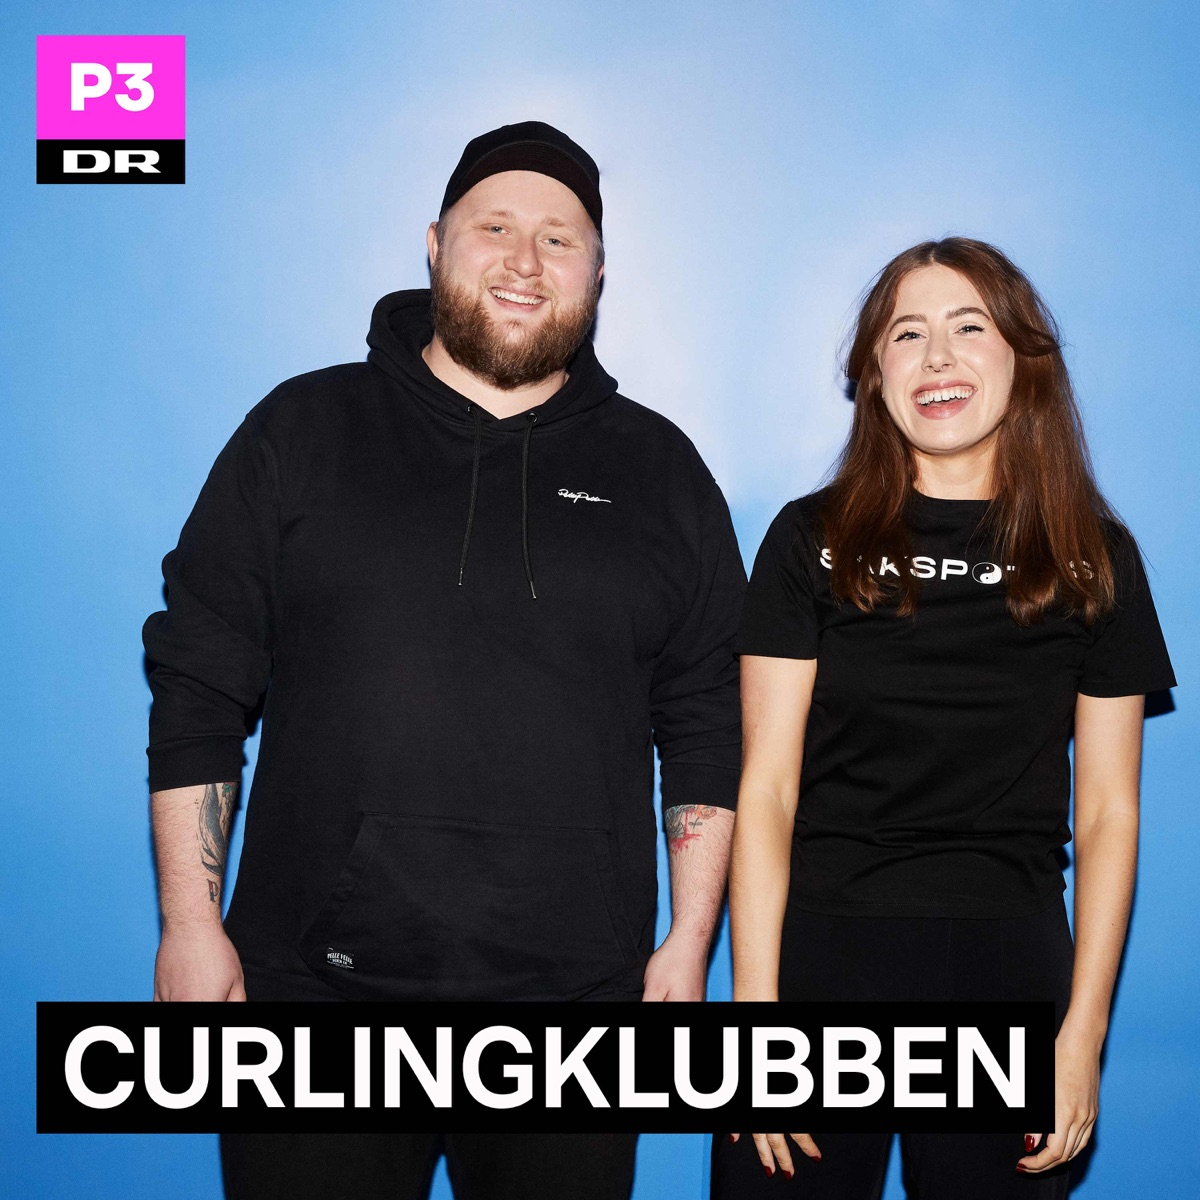 Curlingklubben: Sloganservice og blackface - 15. jun 2020